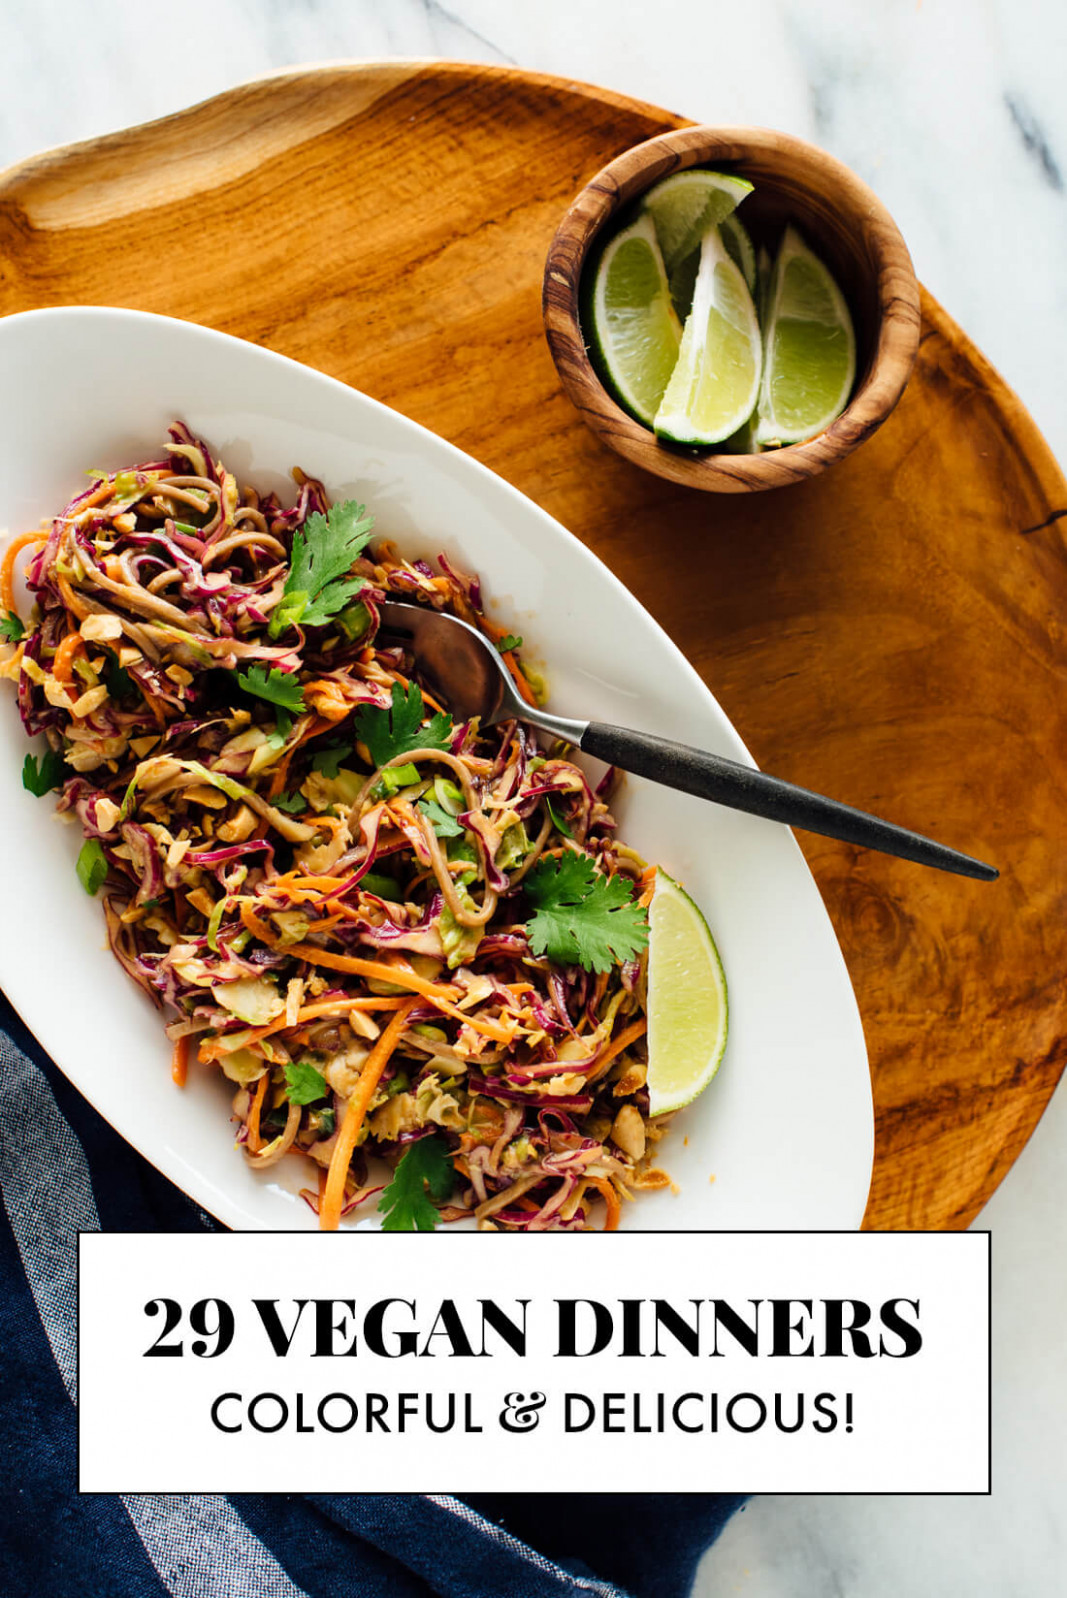 14 Delicious Vegan Dinner Recipes - Cookie and Kate - quick vegan recipes dinner